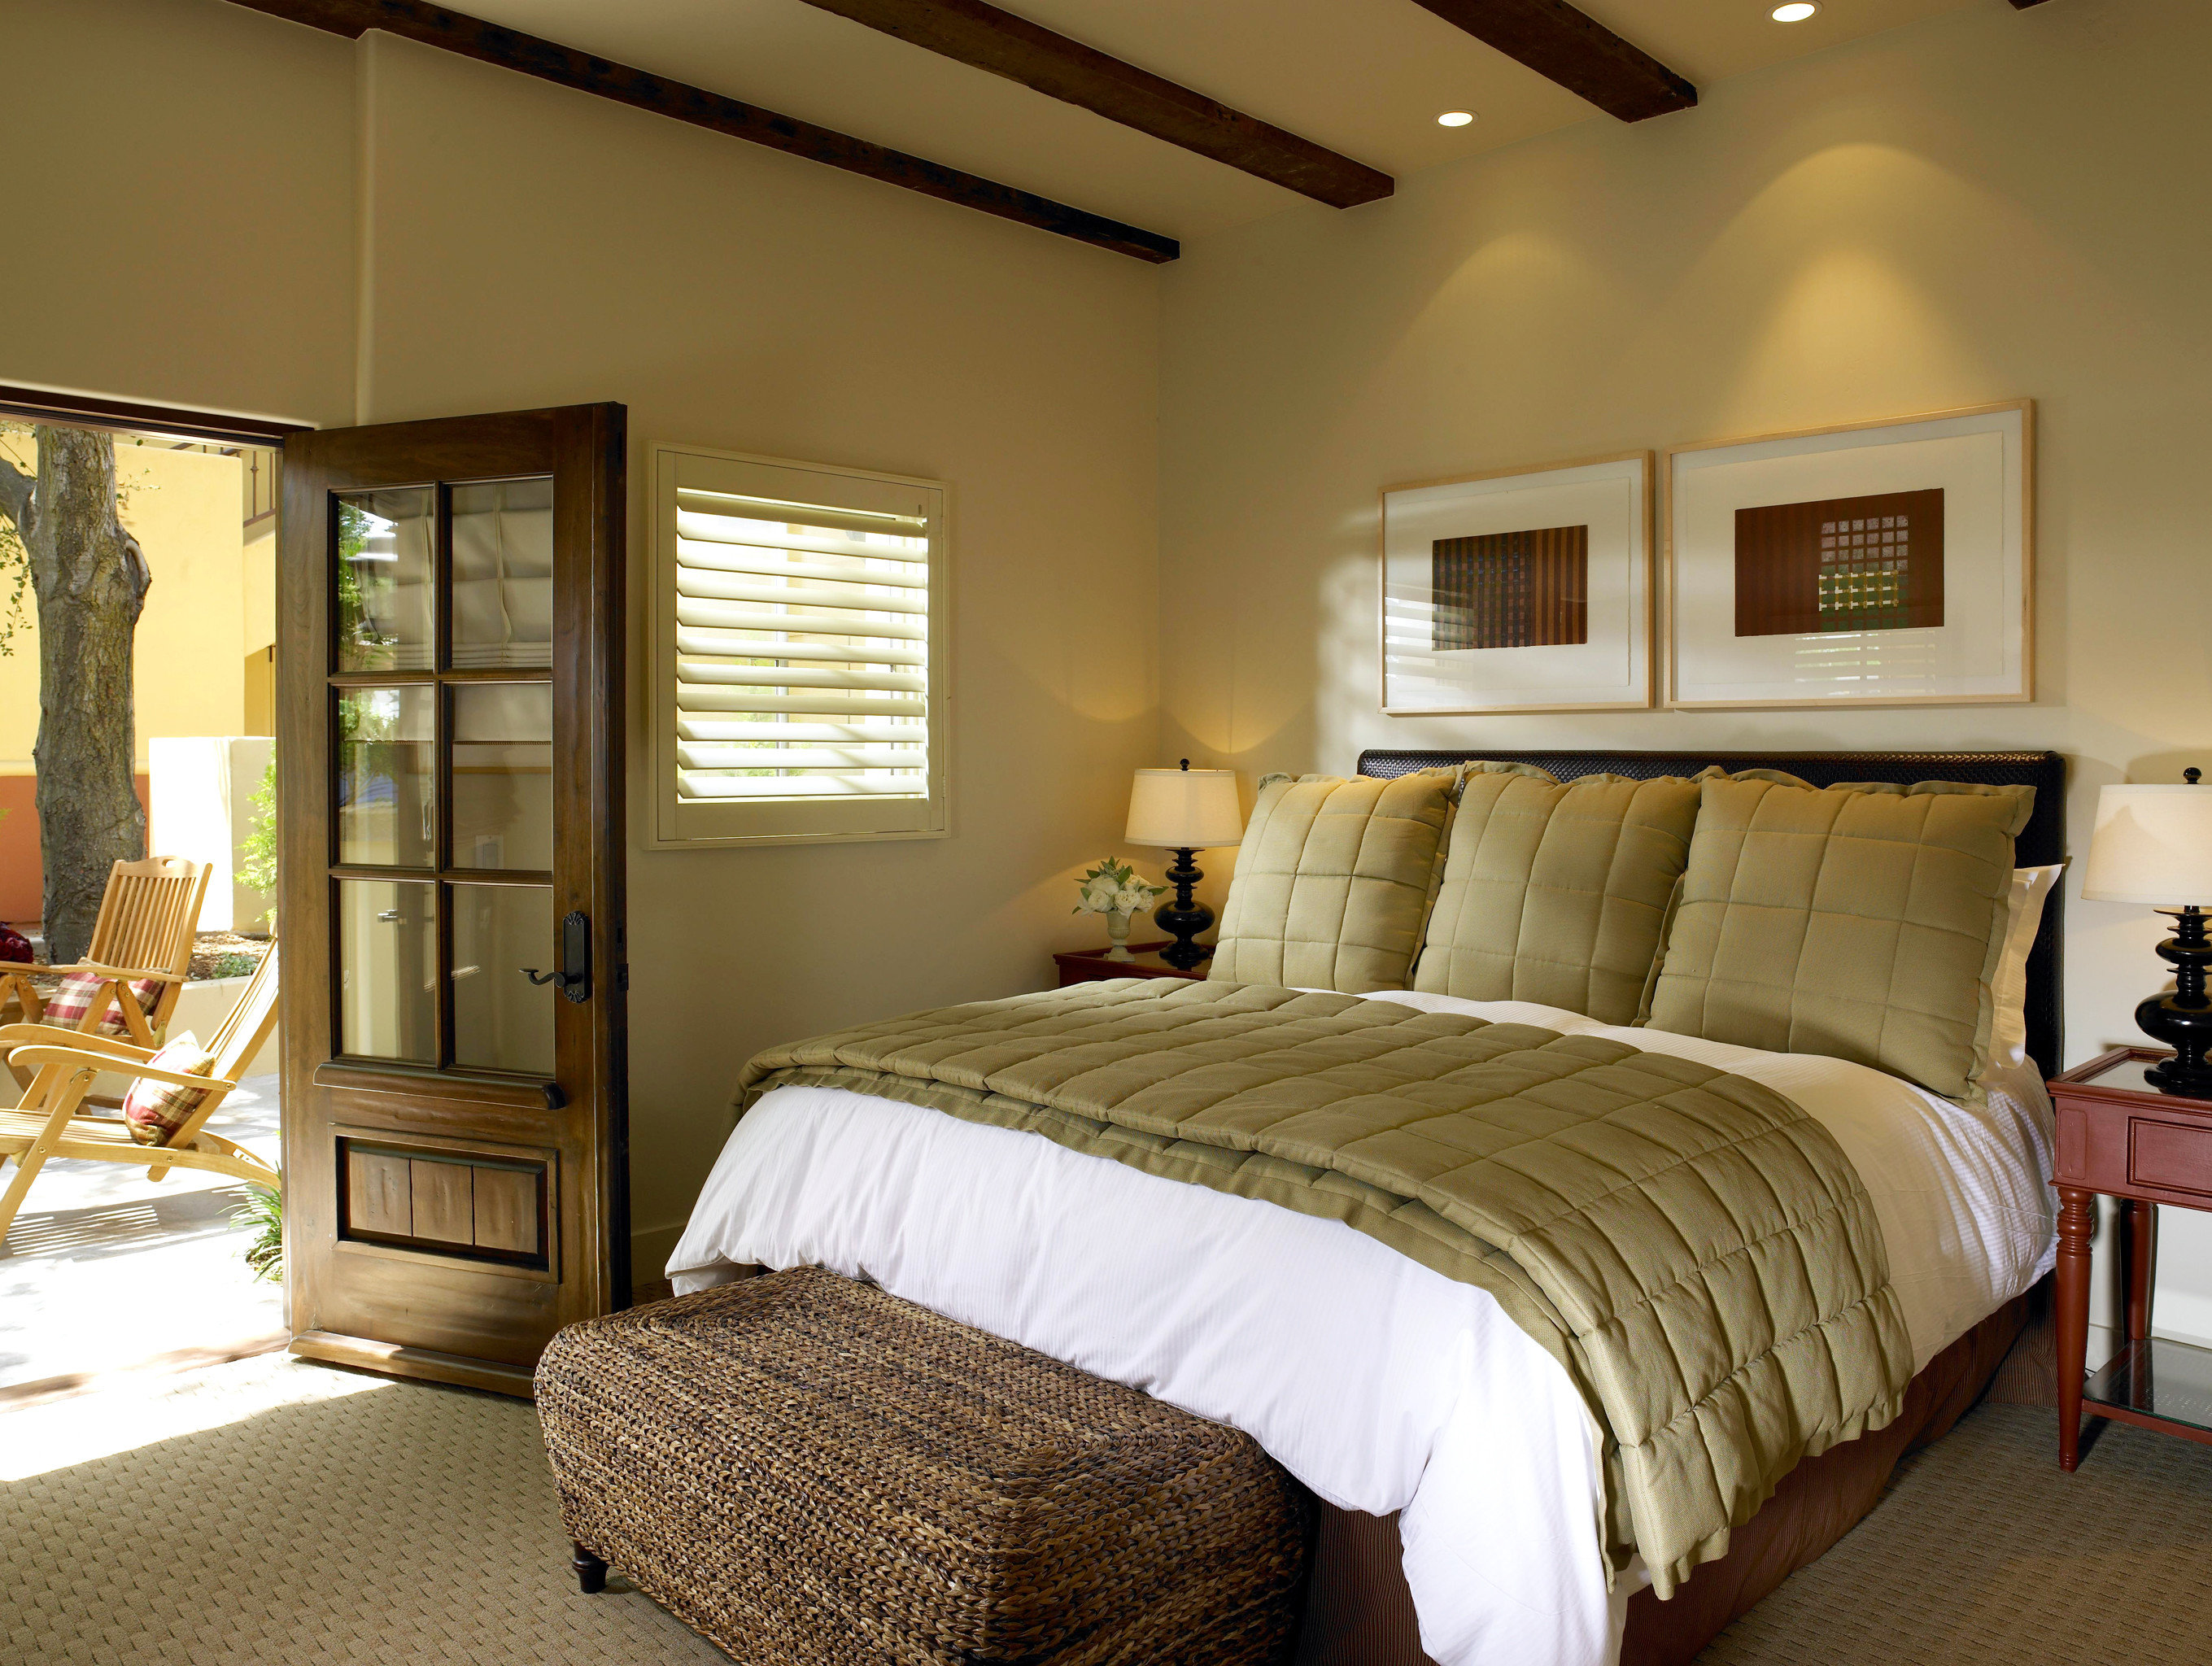 B&B Bedroom Boutique Inn property scene home hardwood cottage living room Suite bed sheet farmhouse bed frame containing